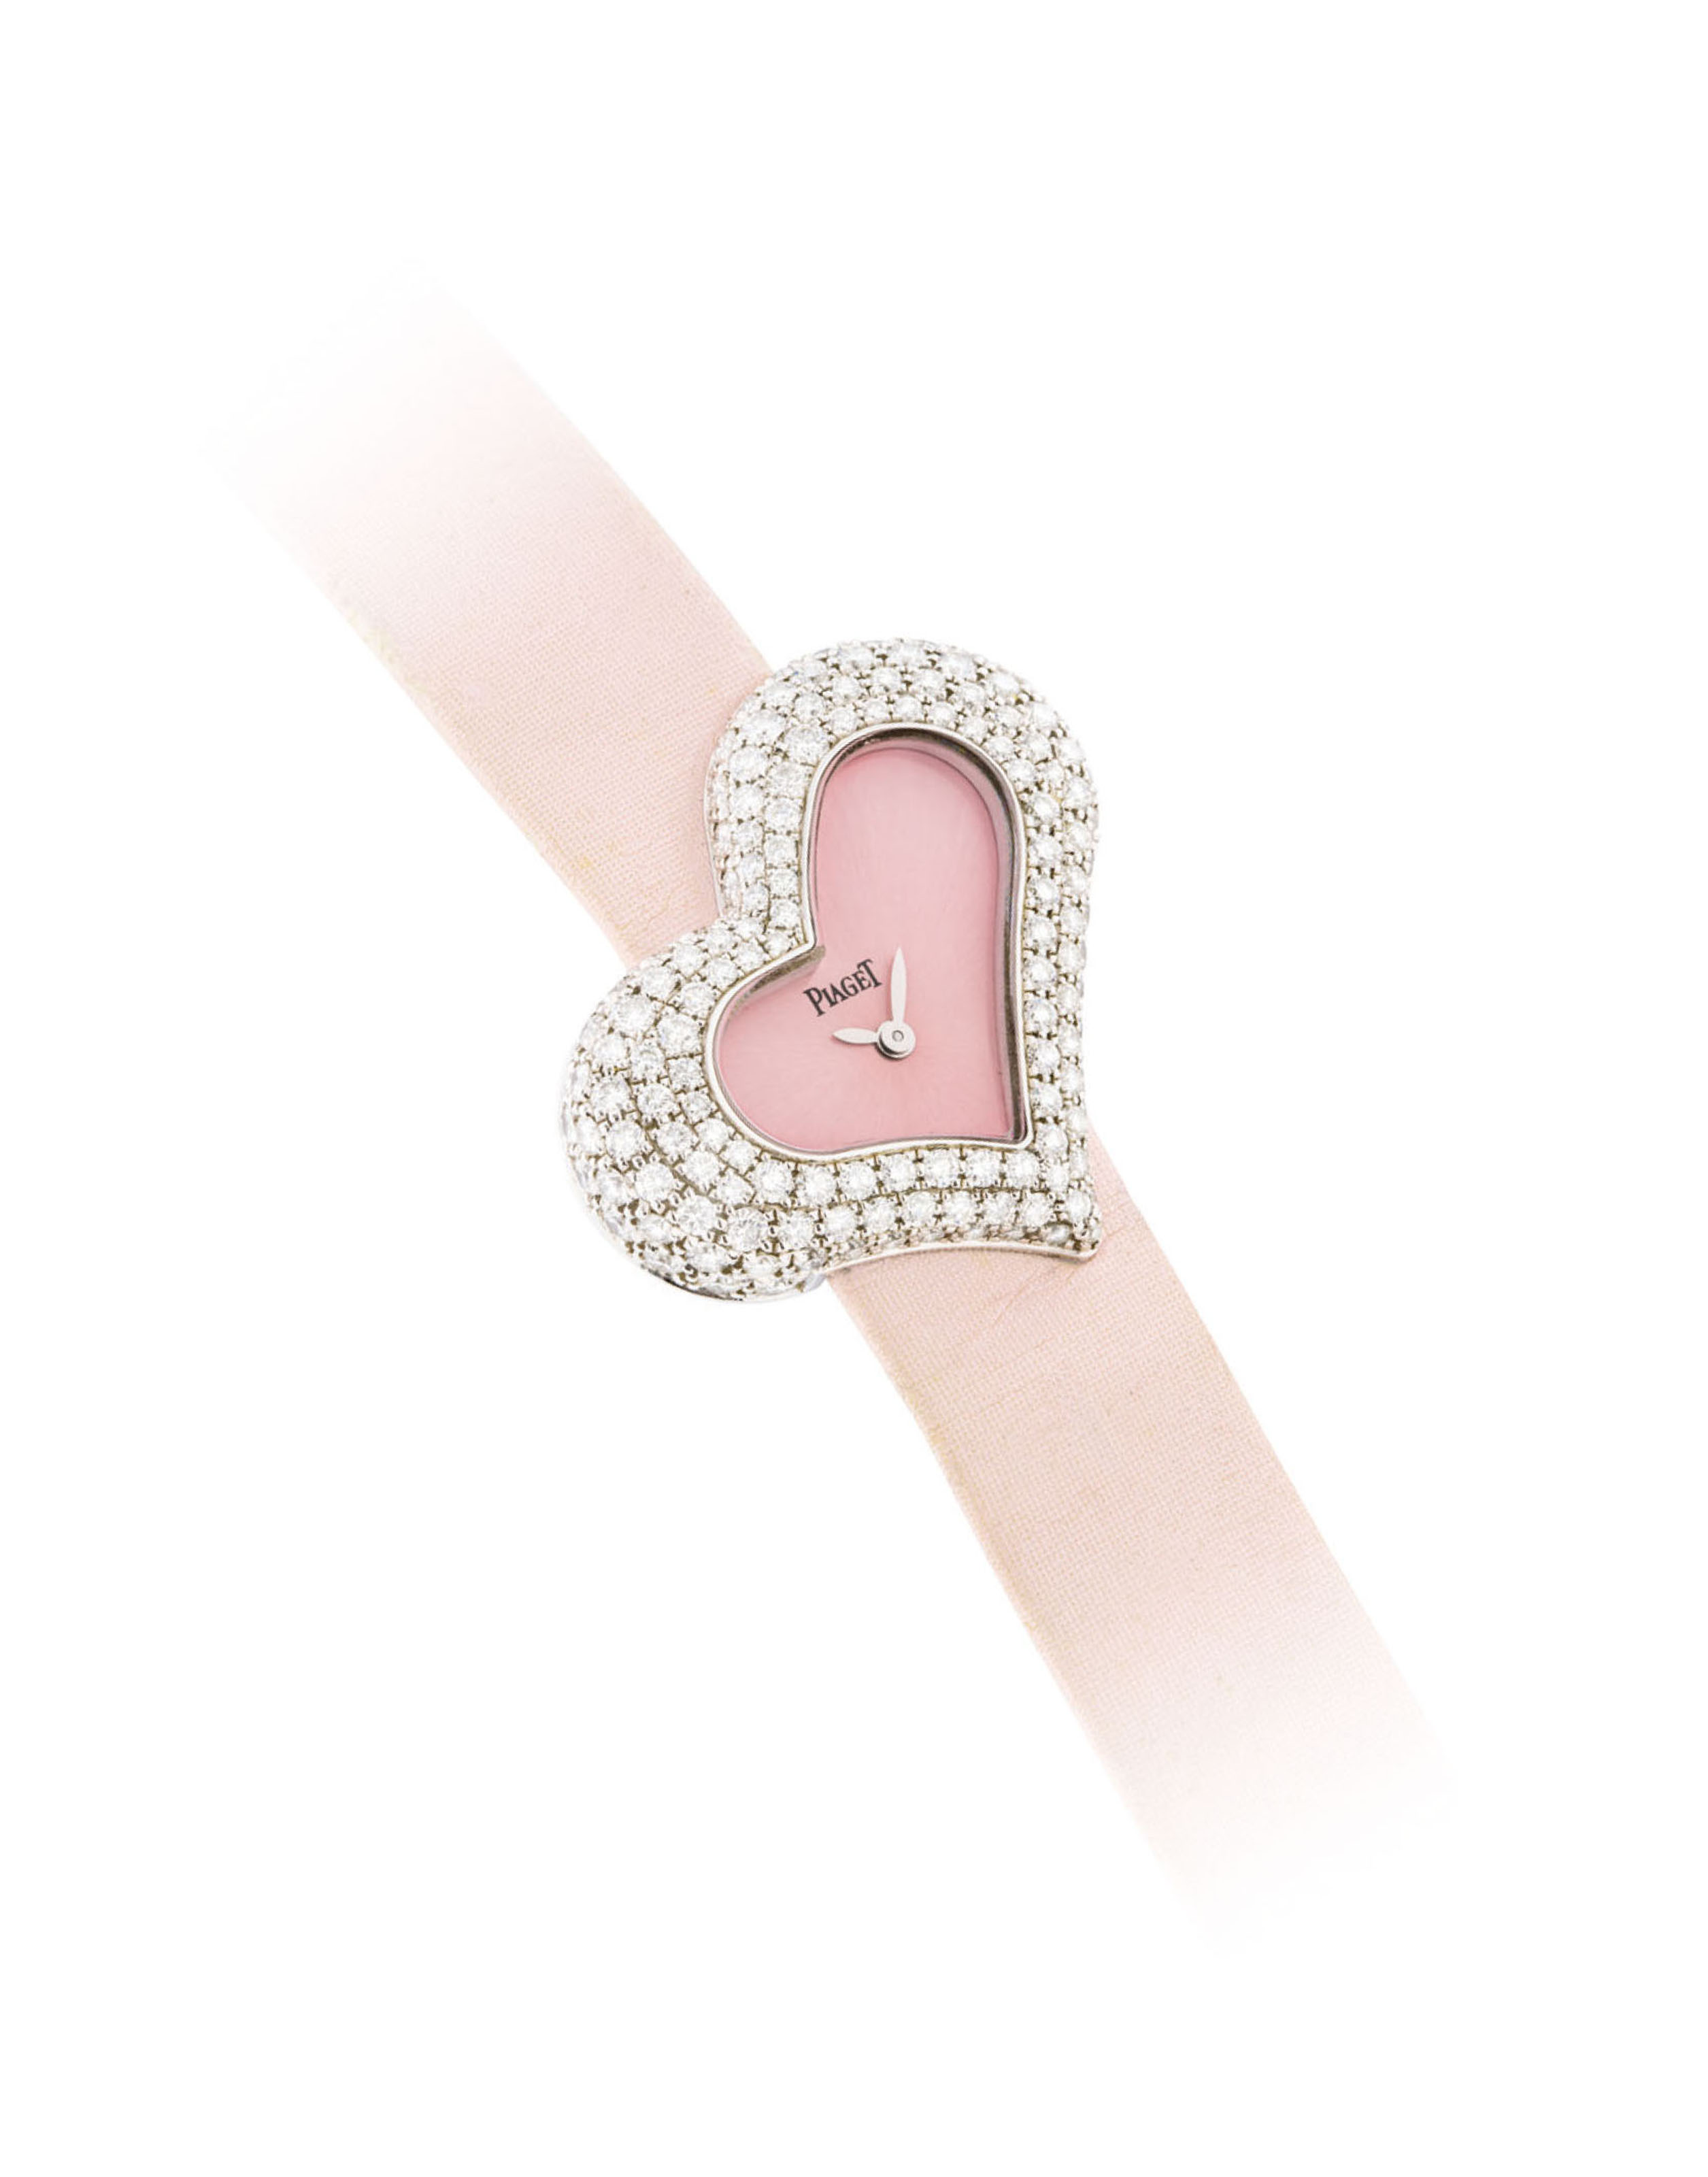 PIAGET A LADY'S 18K WHITE GOLD AND DIAMOND-SET HEART-SHAPED ...